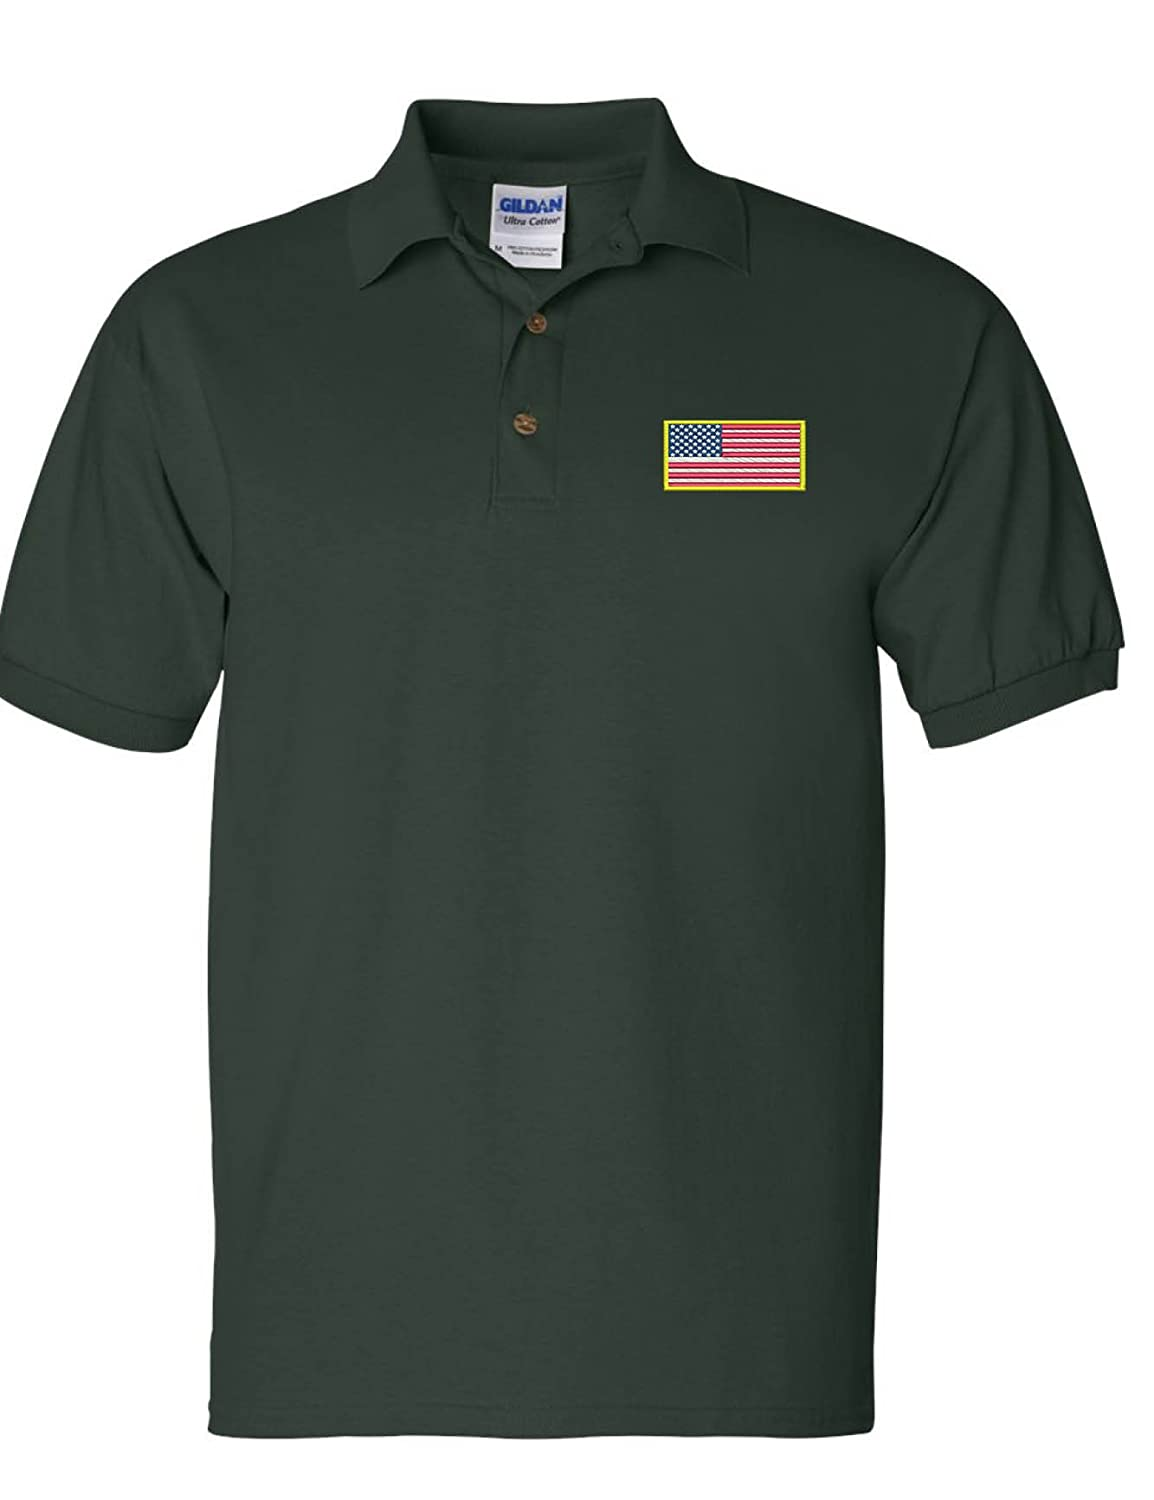 Allntrends Mens Polo T Shirt Embroidery USA Flag Embroidered America Shirt Gift